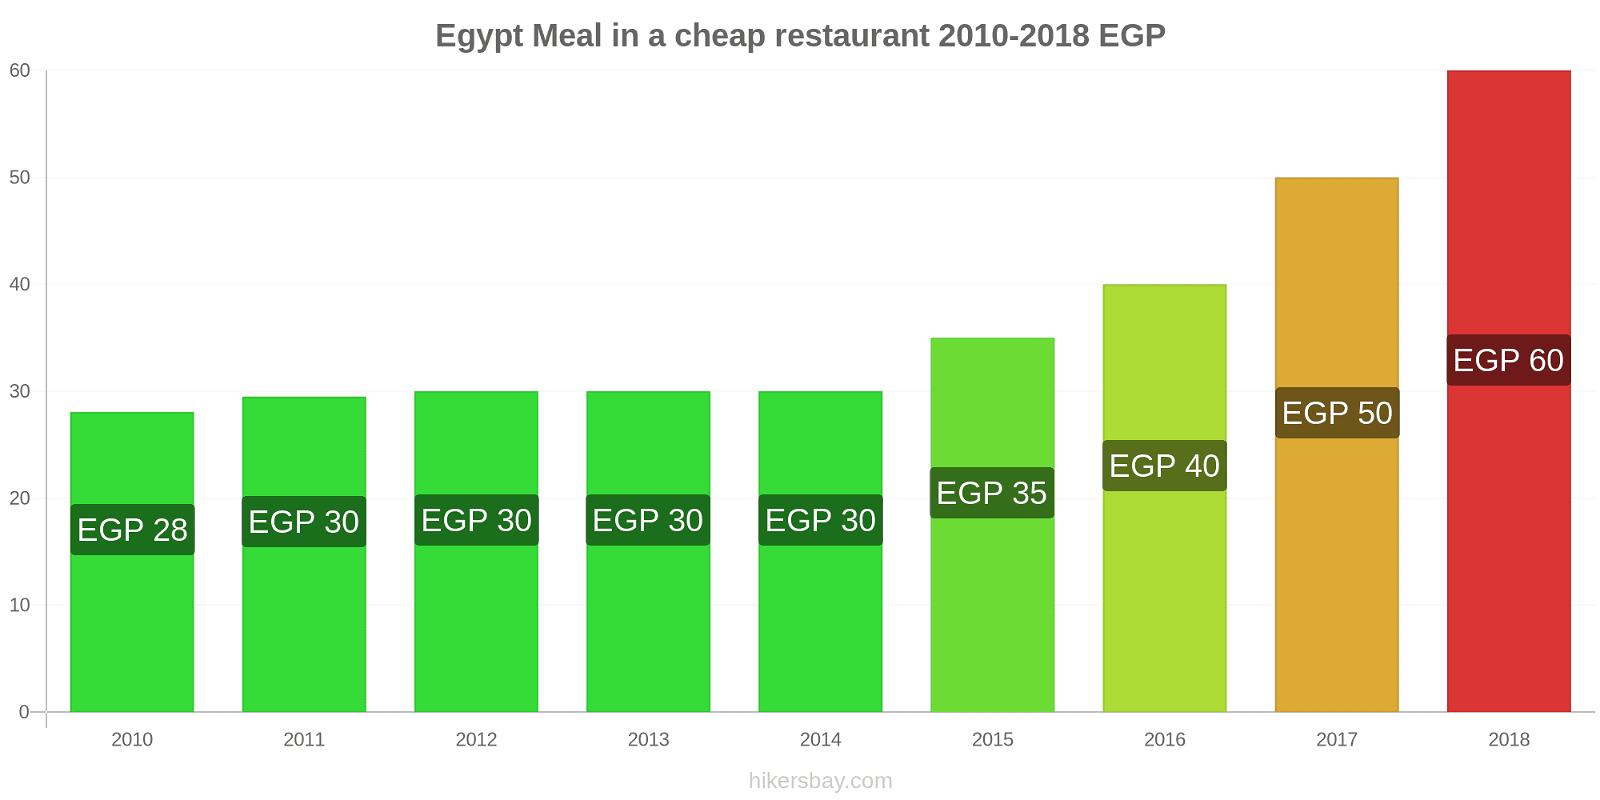 Egypt price changes Meal in a cheap restaurant hikersbay.com